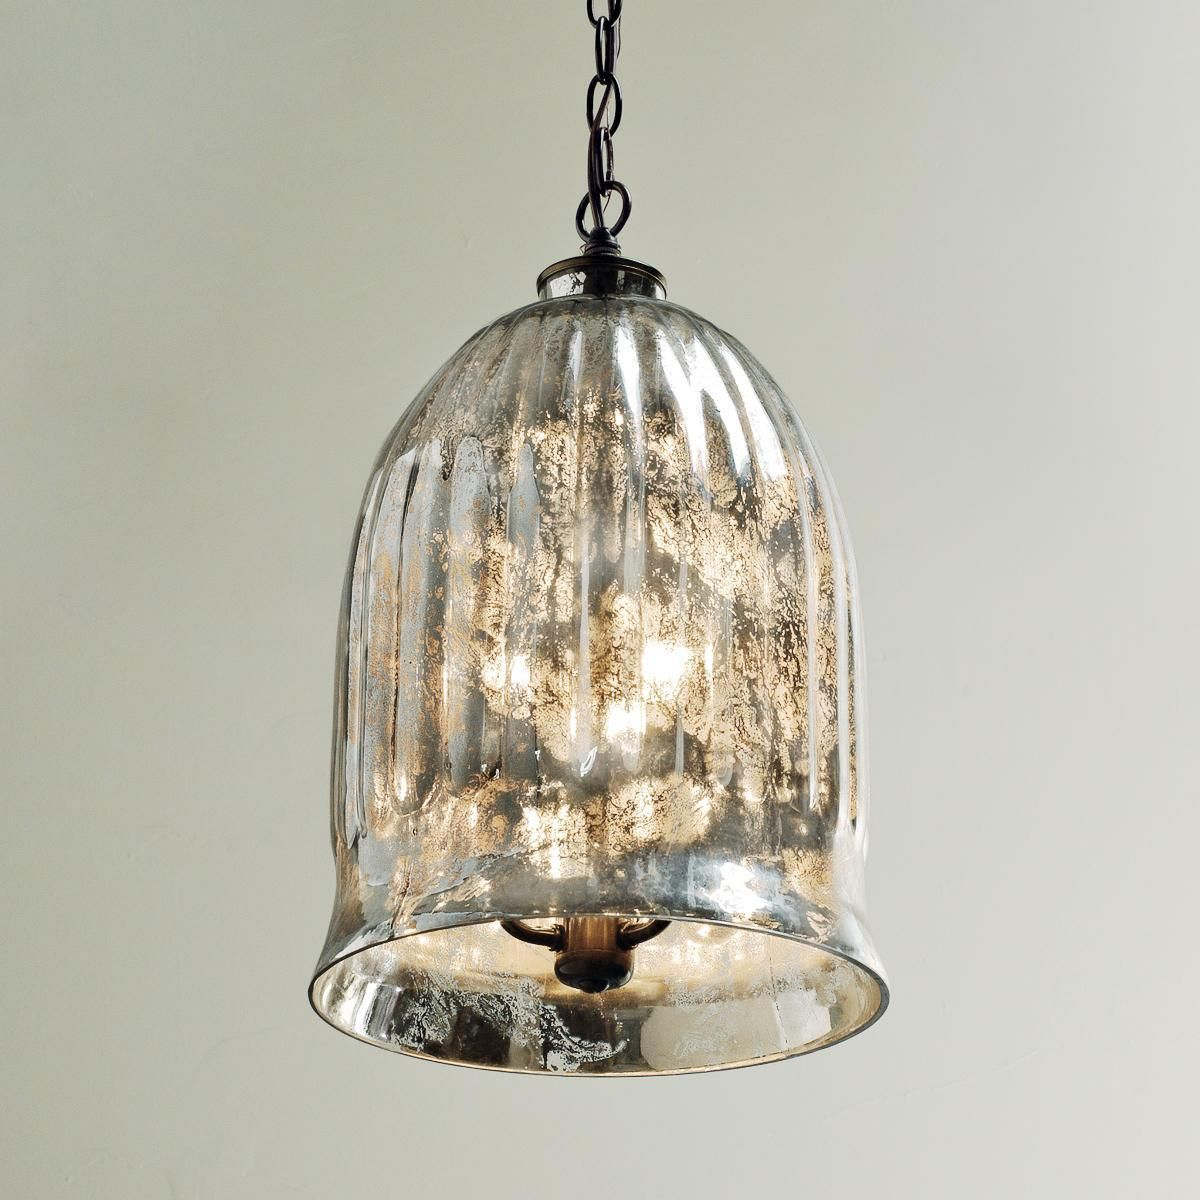 Antique Mirror Bell Pendant Lantern